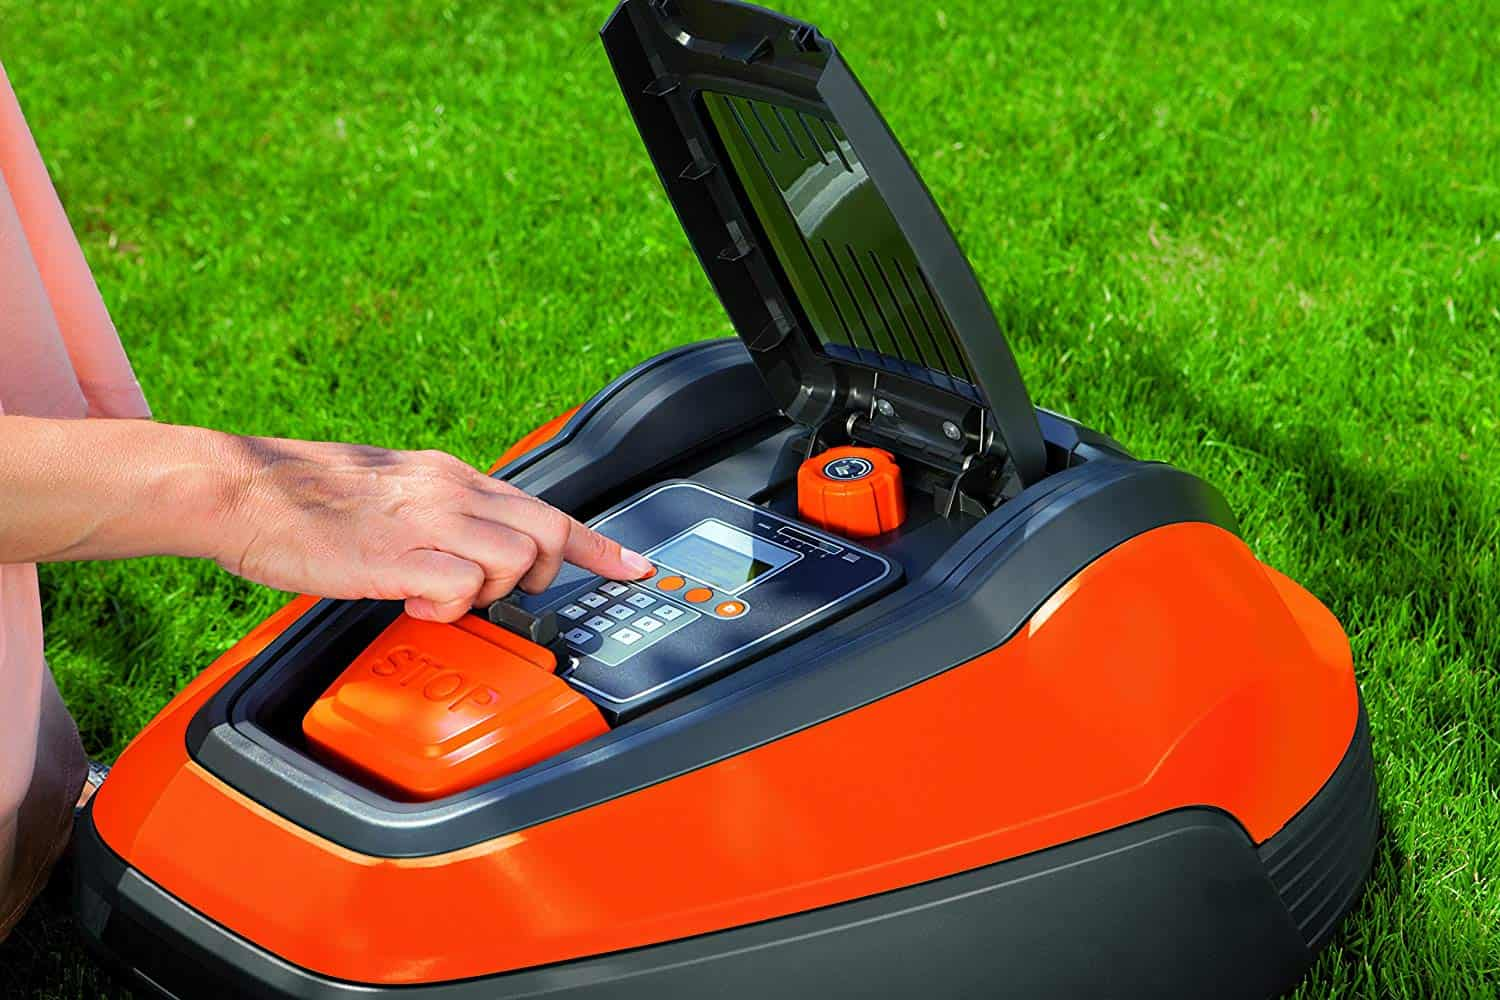 Flymo 1200R Lithium-Ion Robotic Lawn Mower